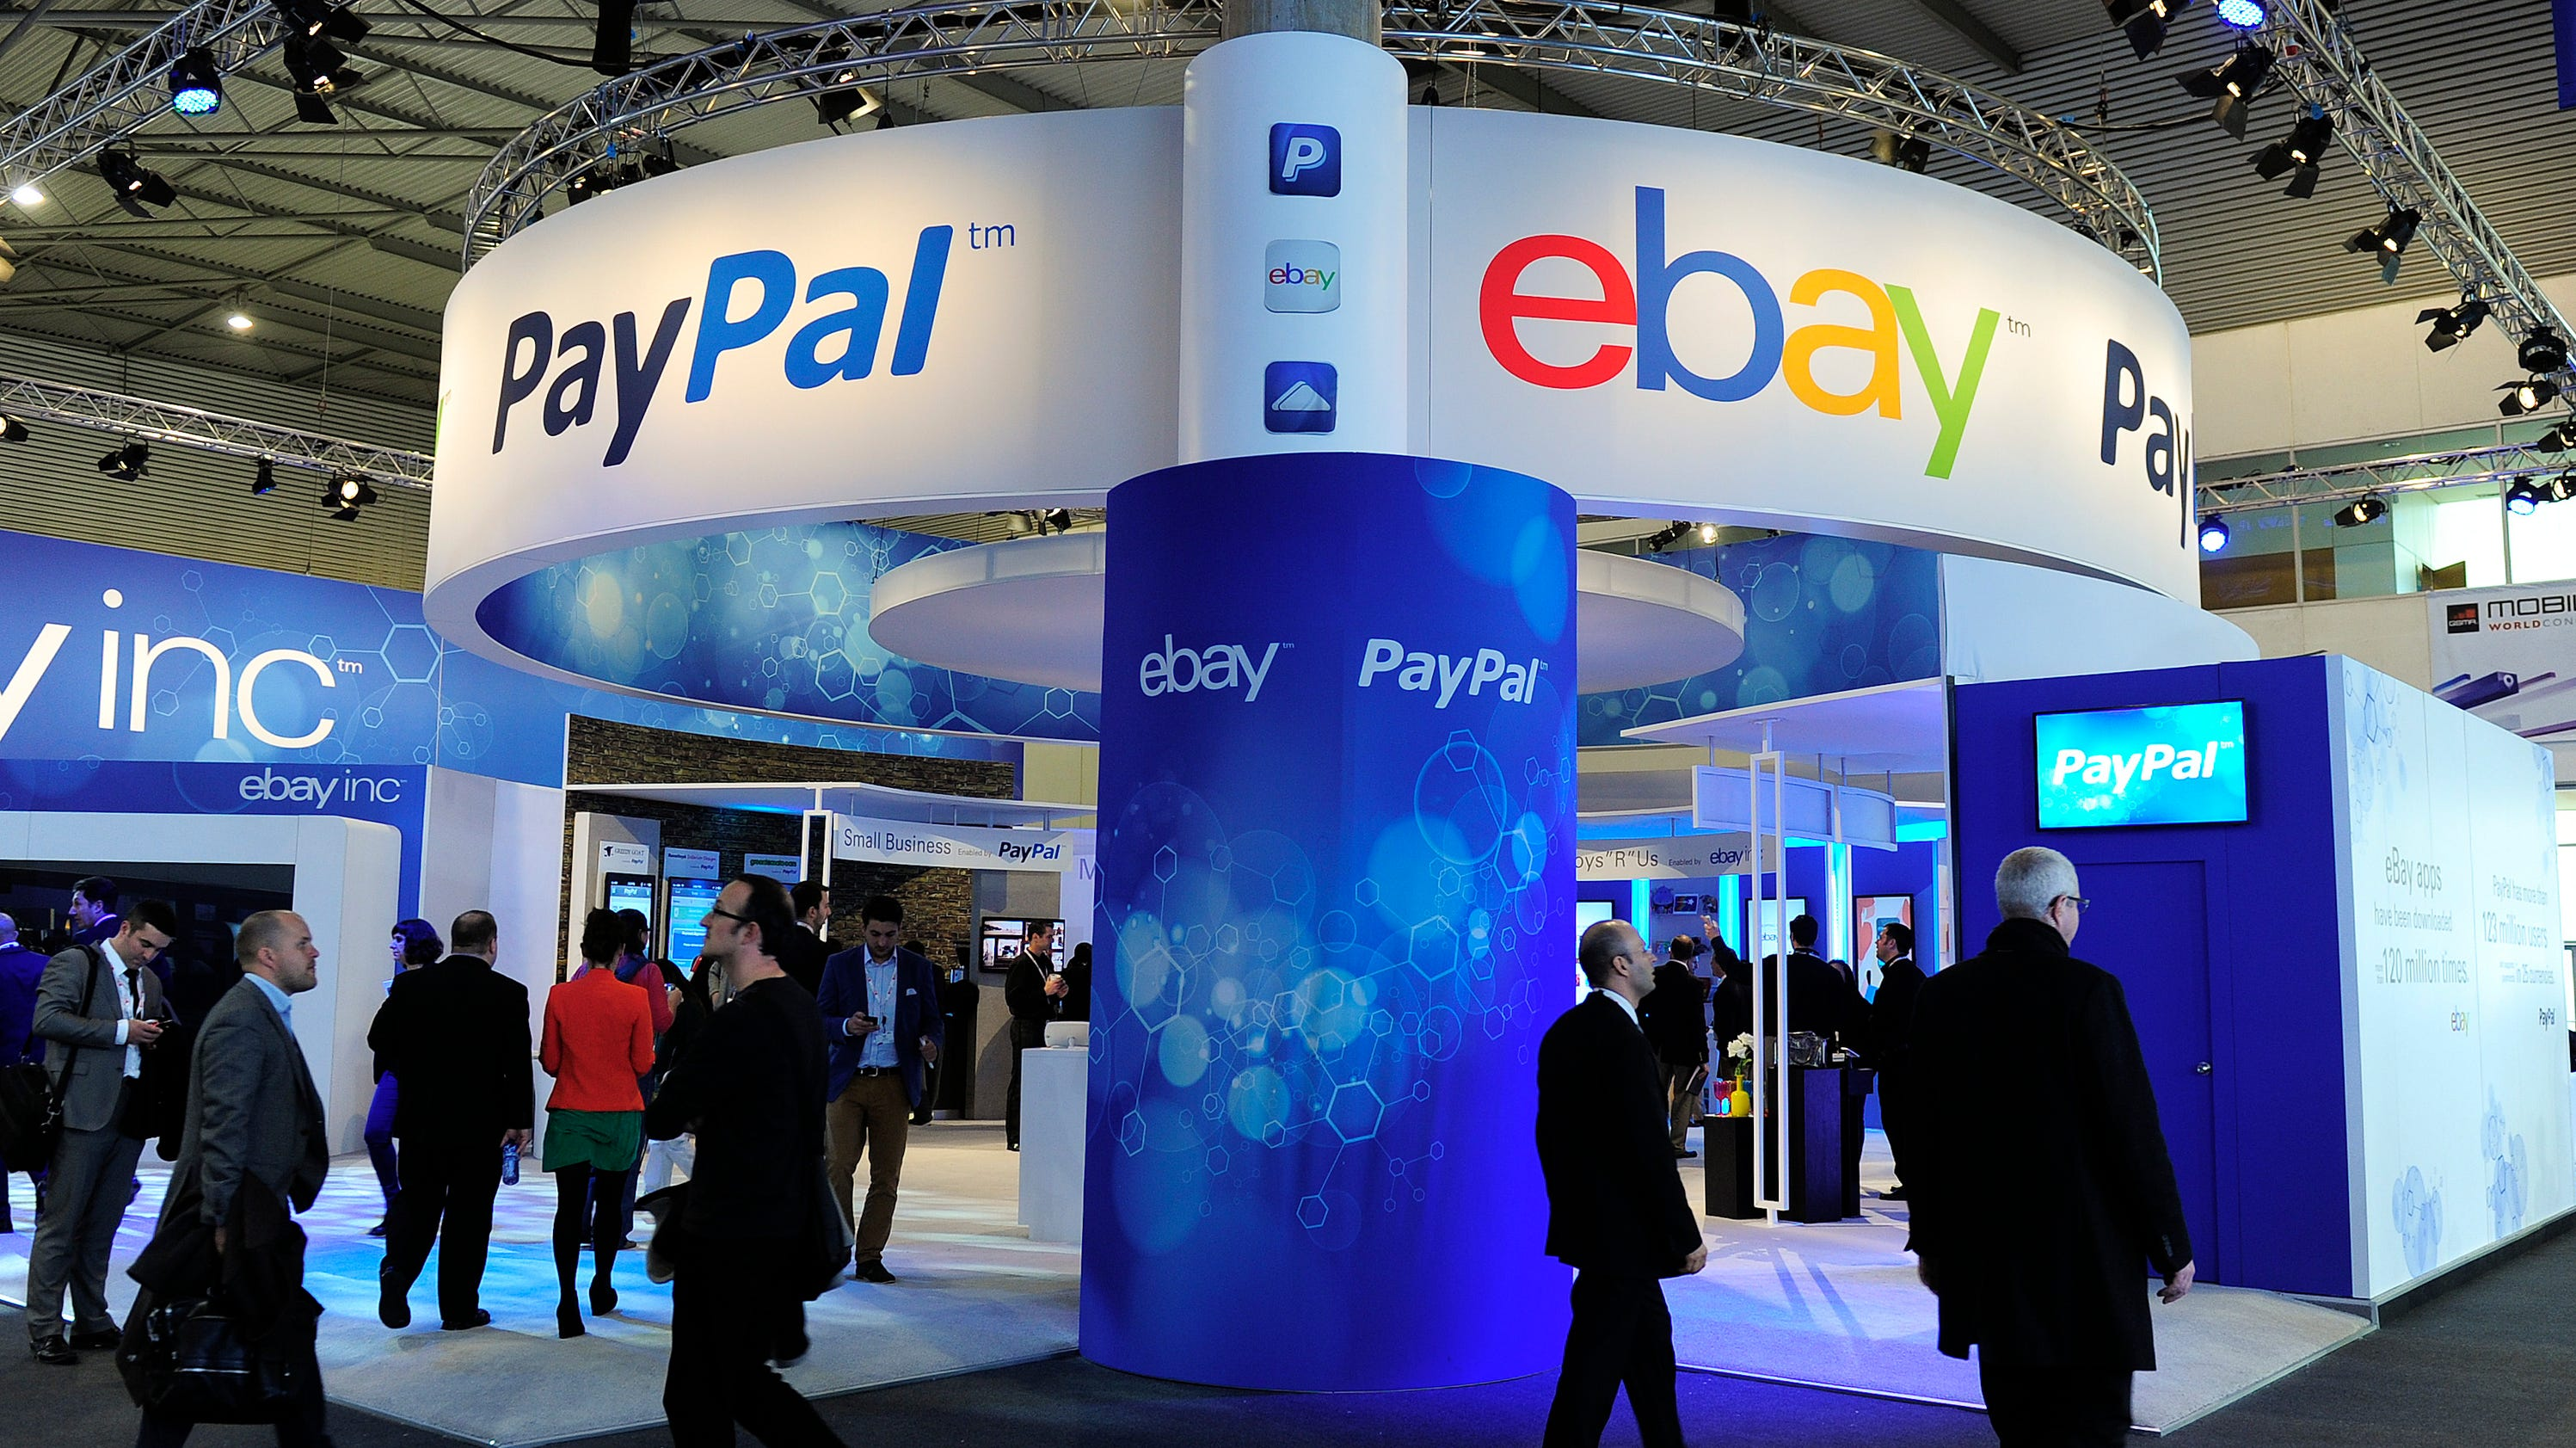 EBay To Spin Off PayPal Into Separate Company